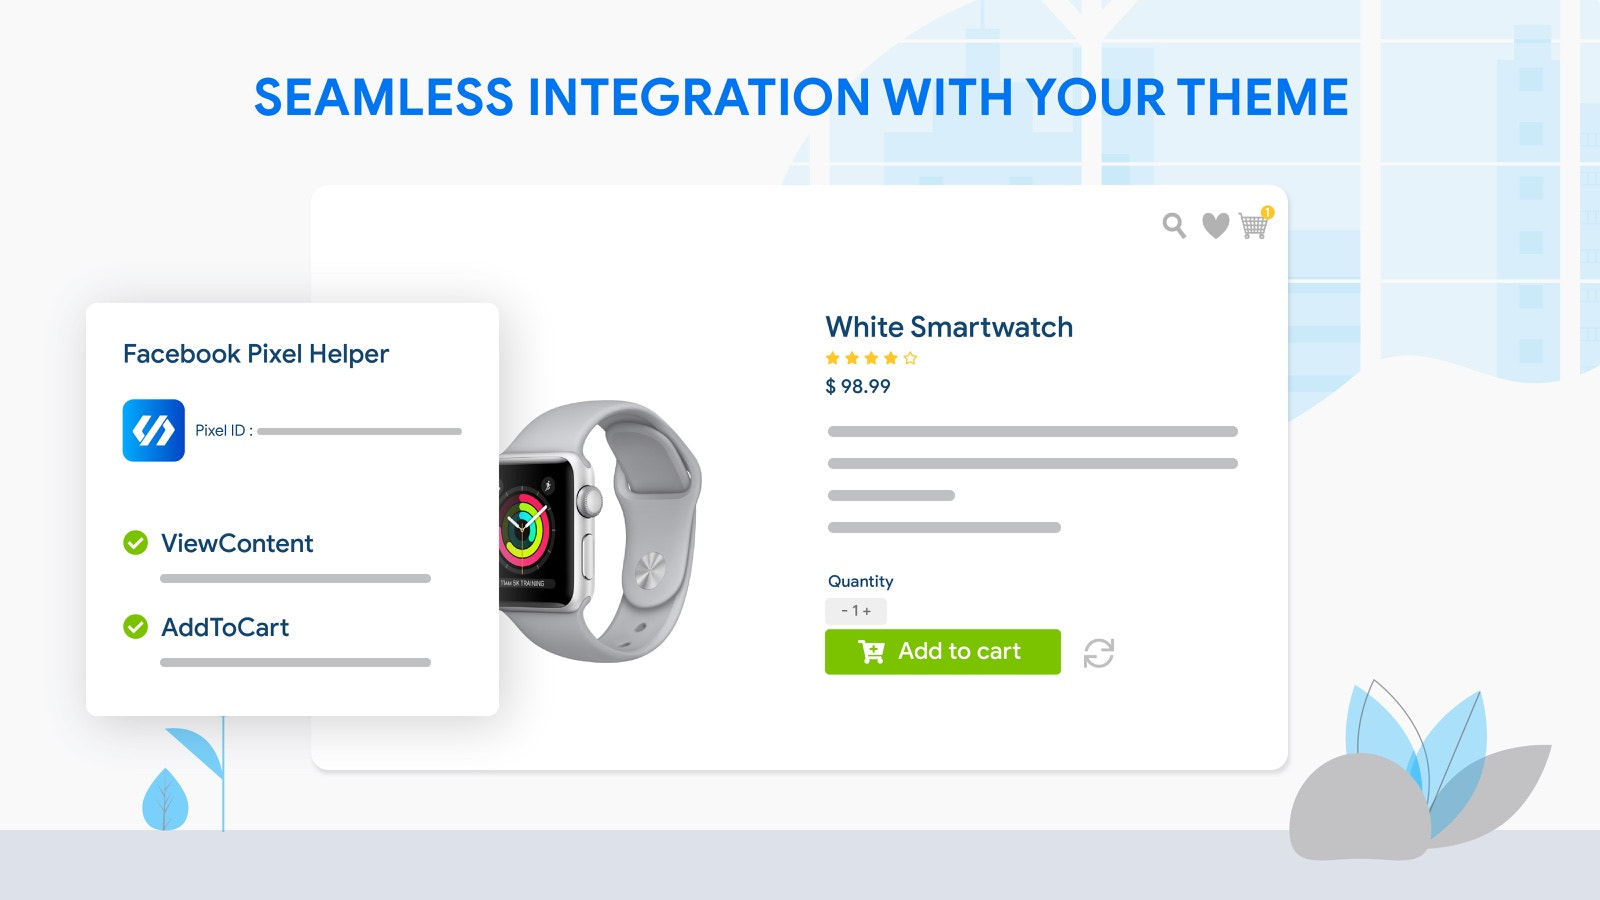 Seamless integration with your theme